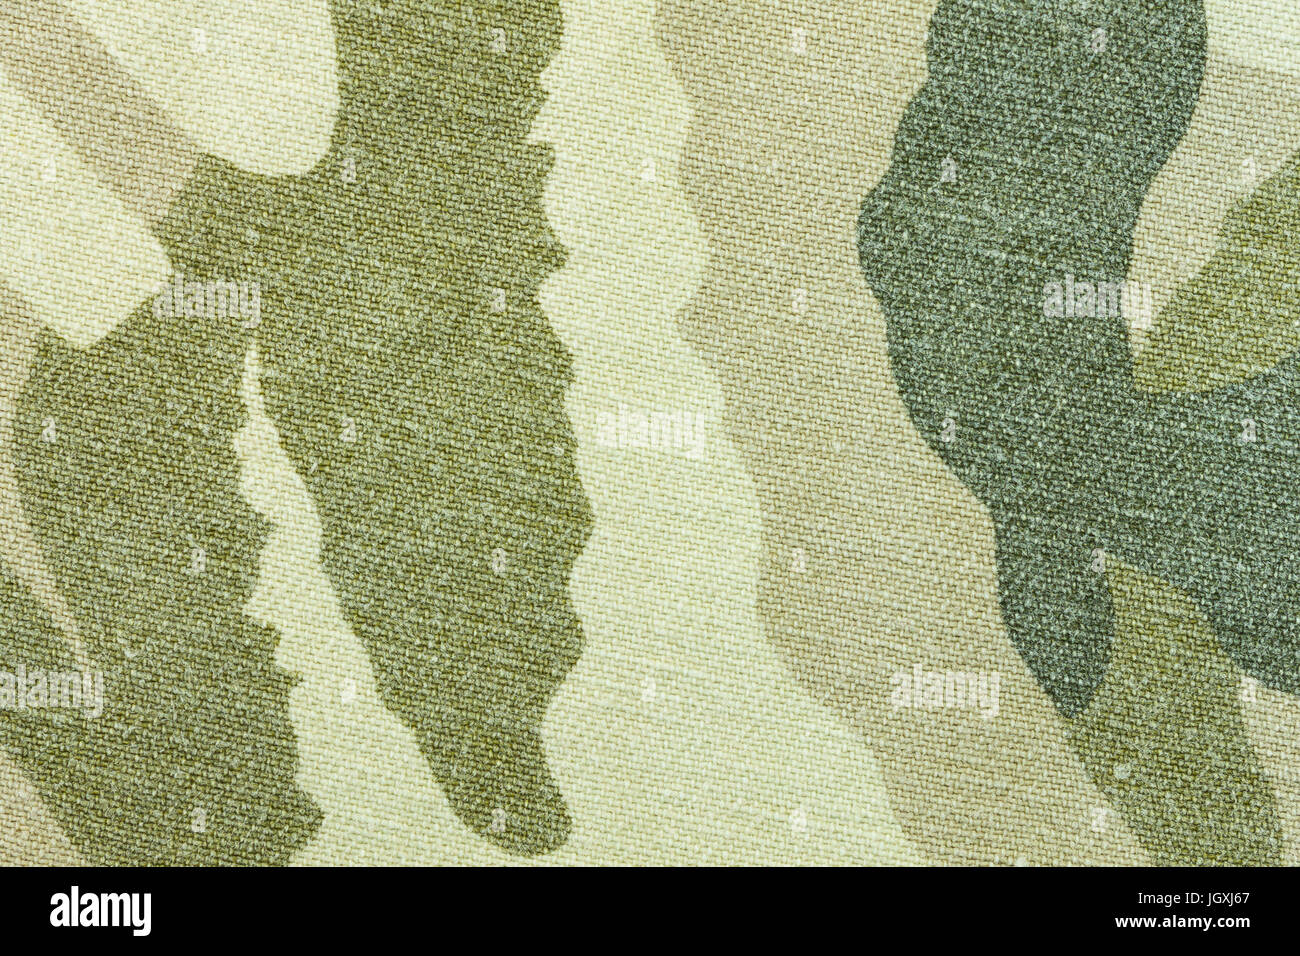 Military Or Army Camouflage Fabric Texture Pattern Background For Design